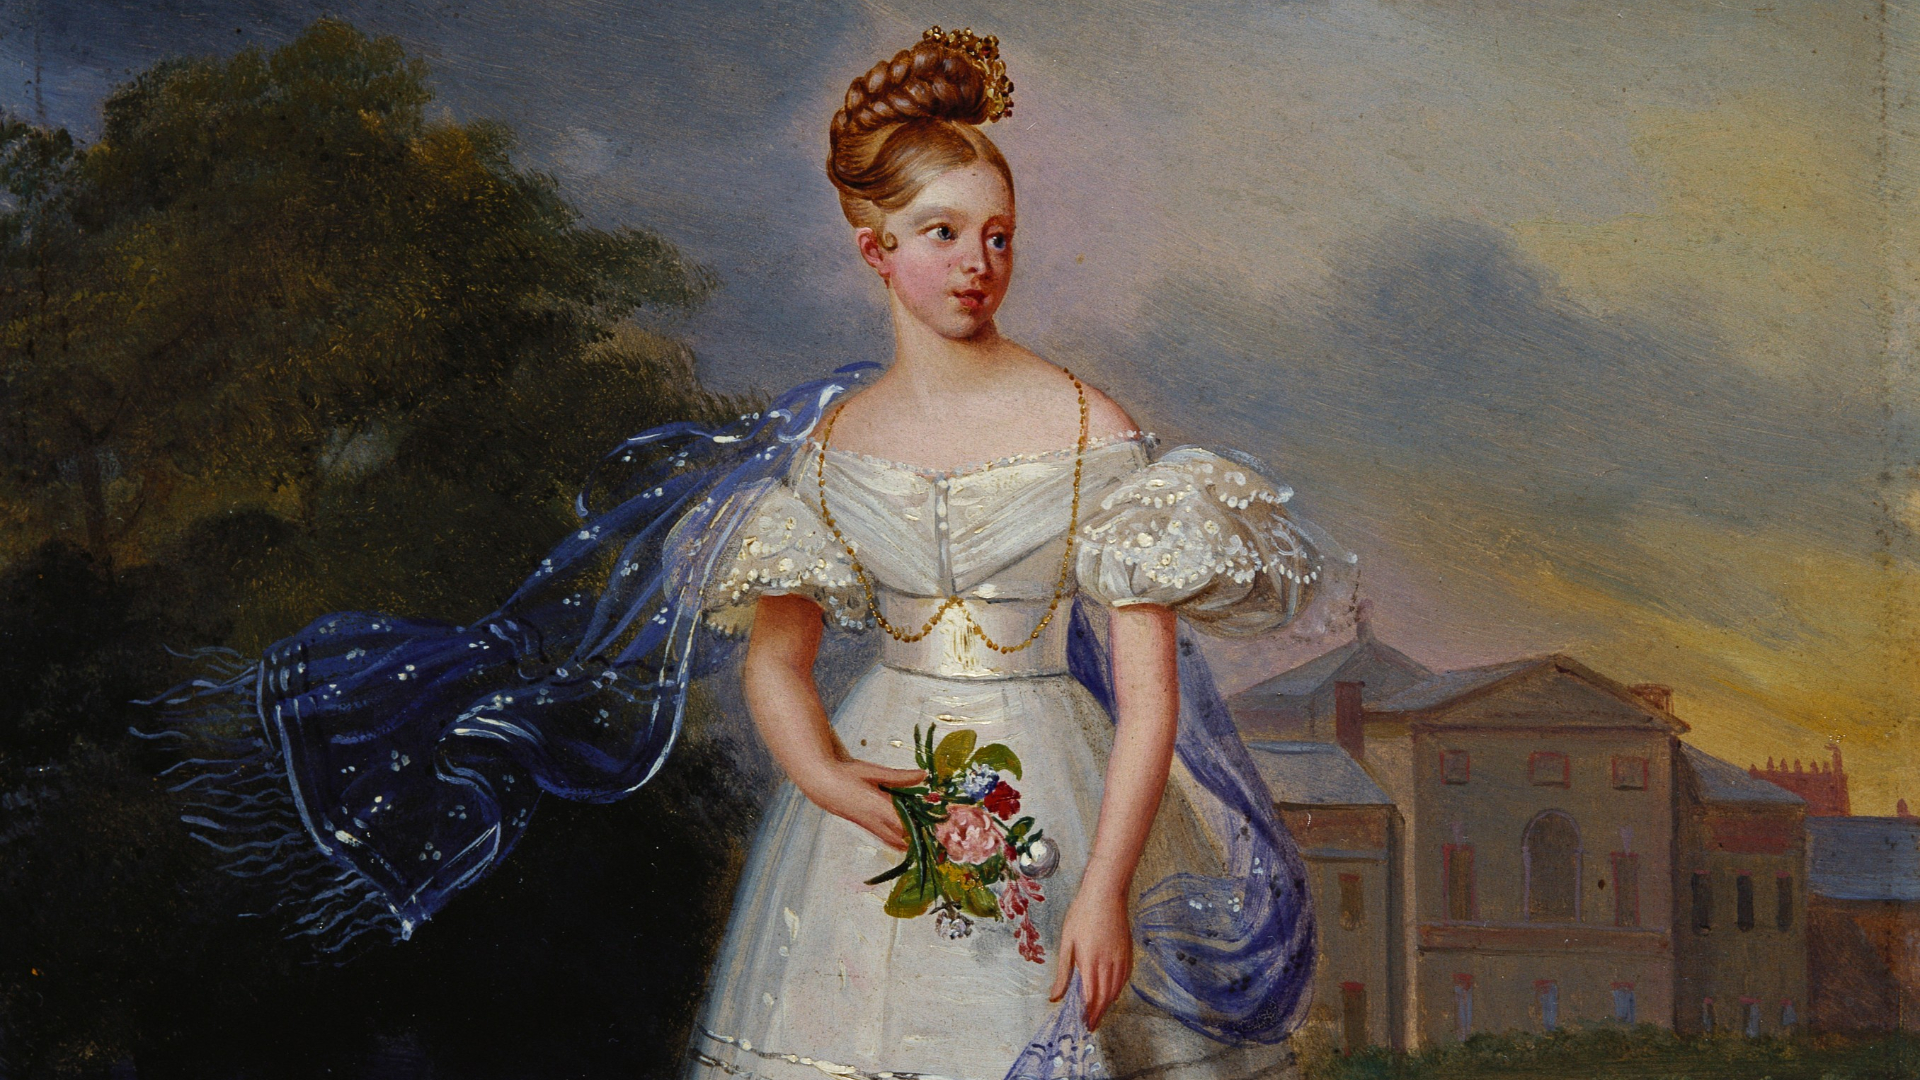 Painting of a young Queen Victoria in a white dress as part of Victoria 2019 exhibition at Kensington Palace